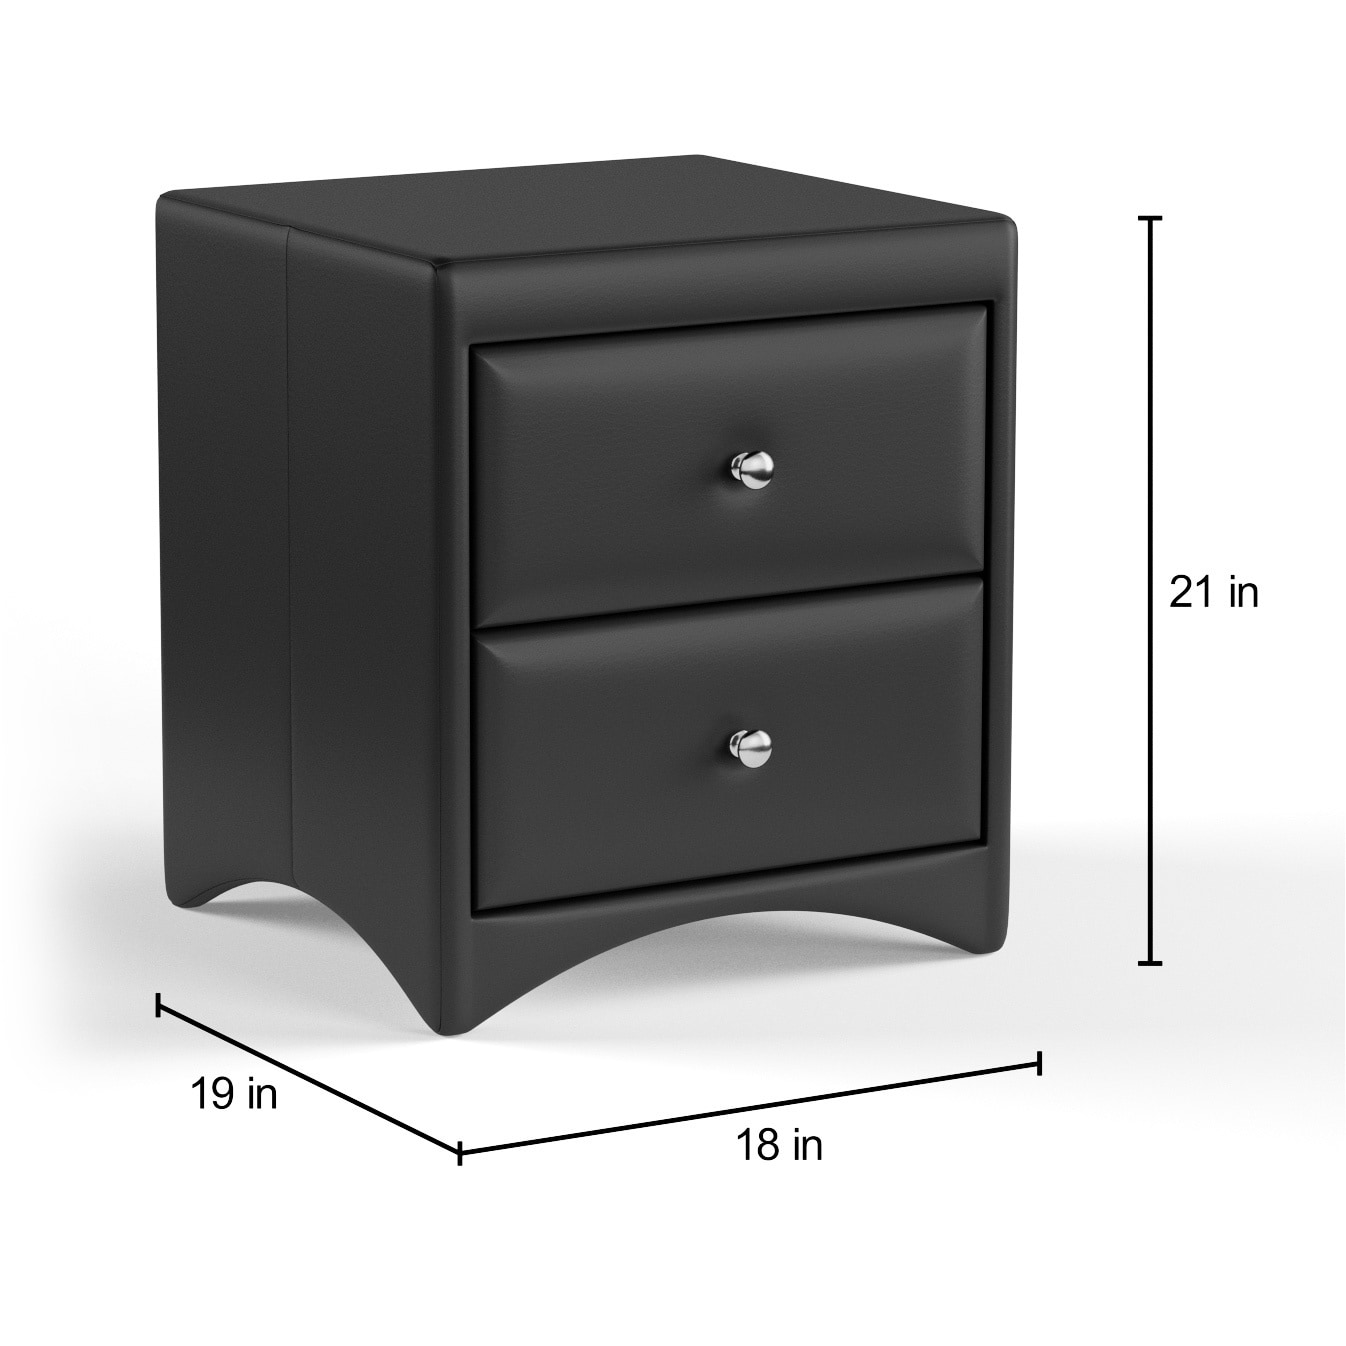 Baxton Studio Dorian Black Faux Leather Upholstered Modern Nightstand